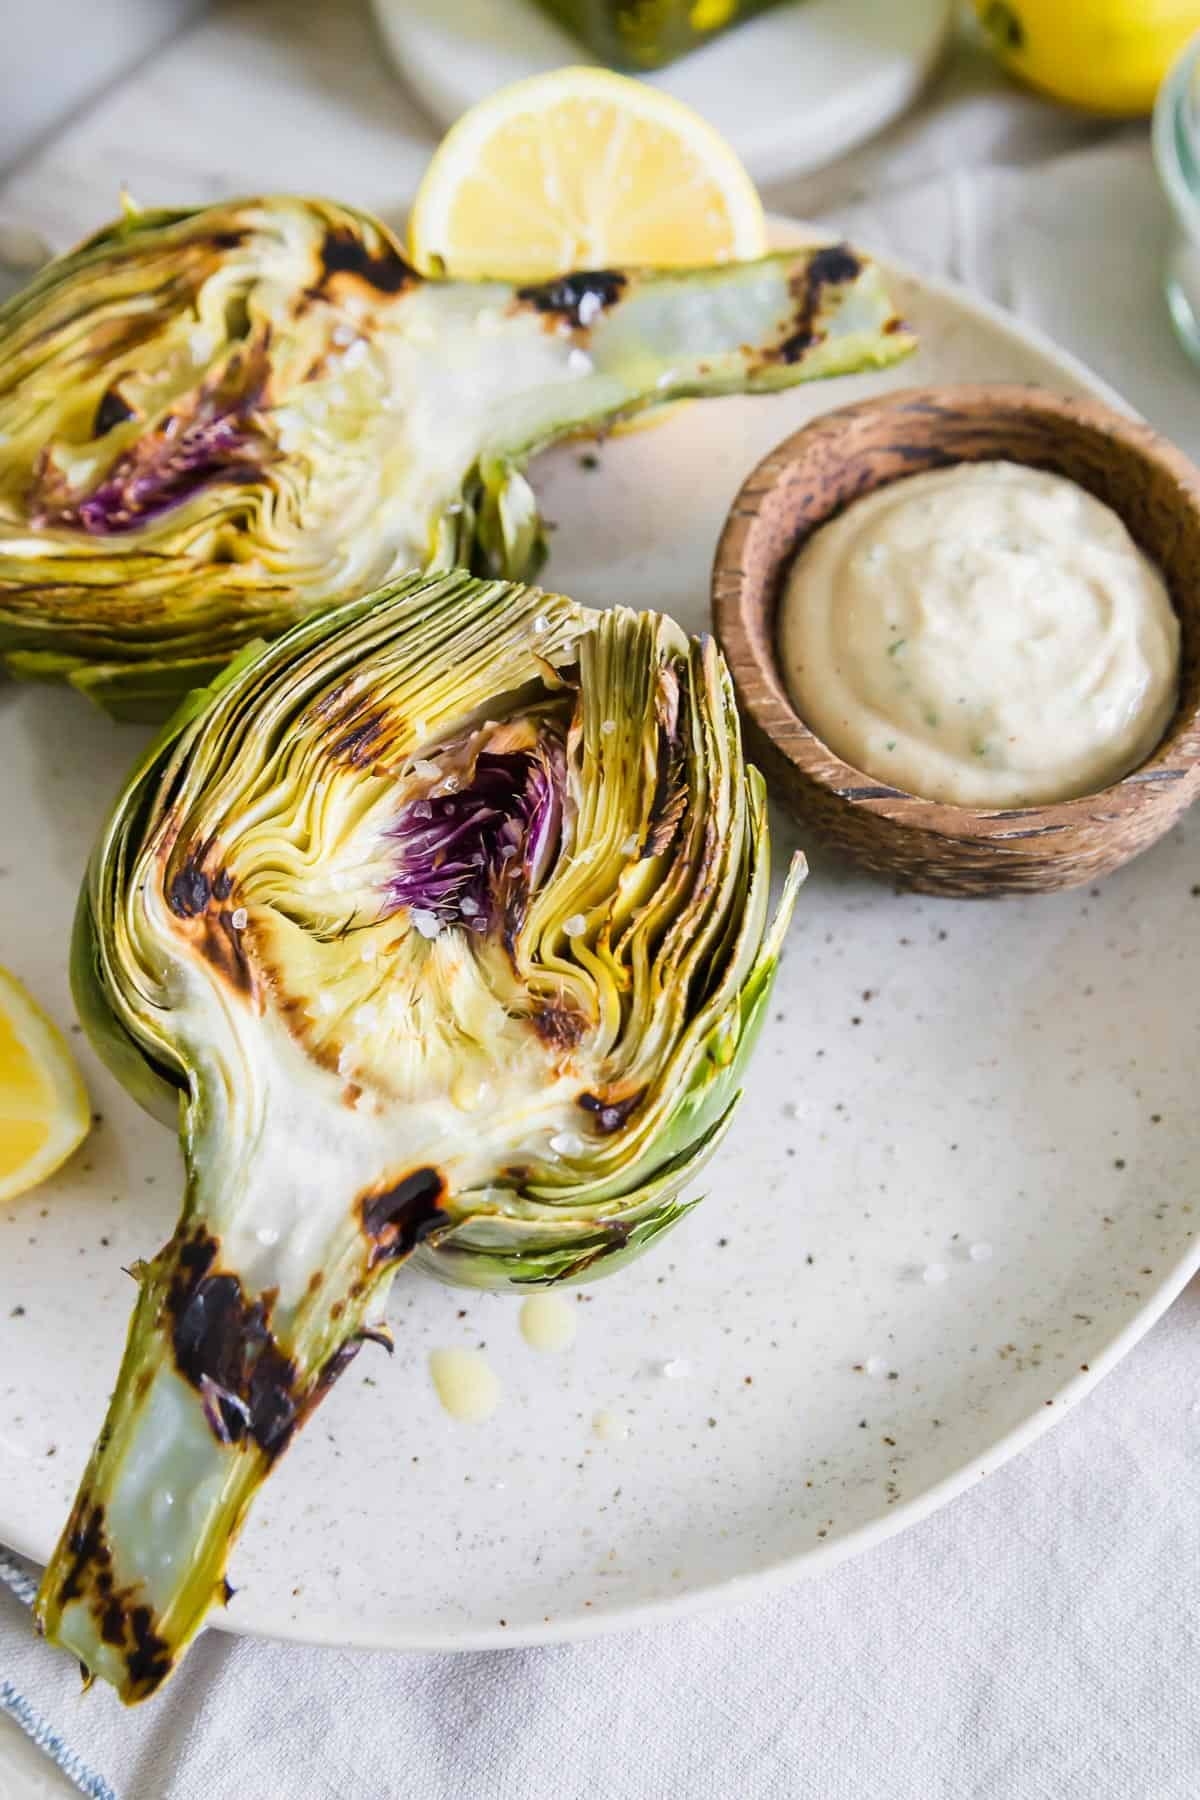 Enjoy these easy grilled artichokes with a drizzle of olive oil, sea salt and bright tahini lemon herb dipping sauce.